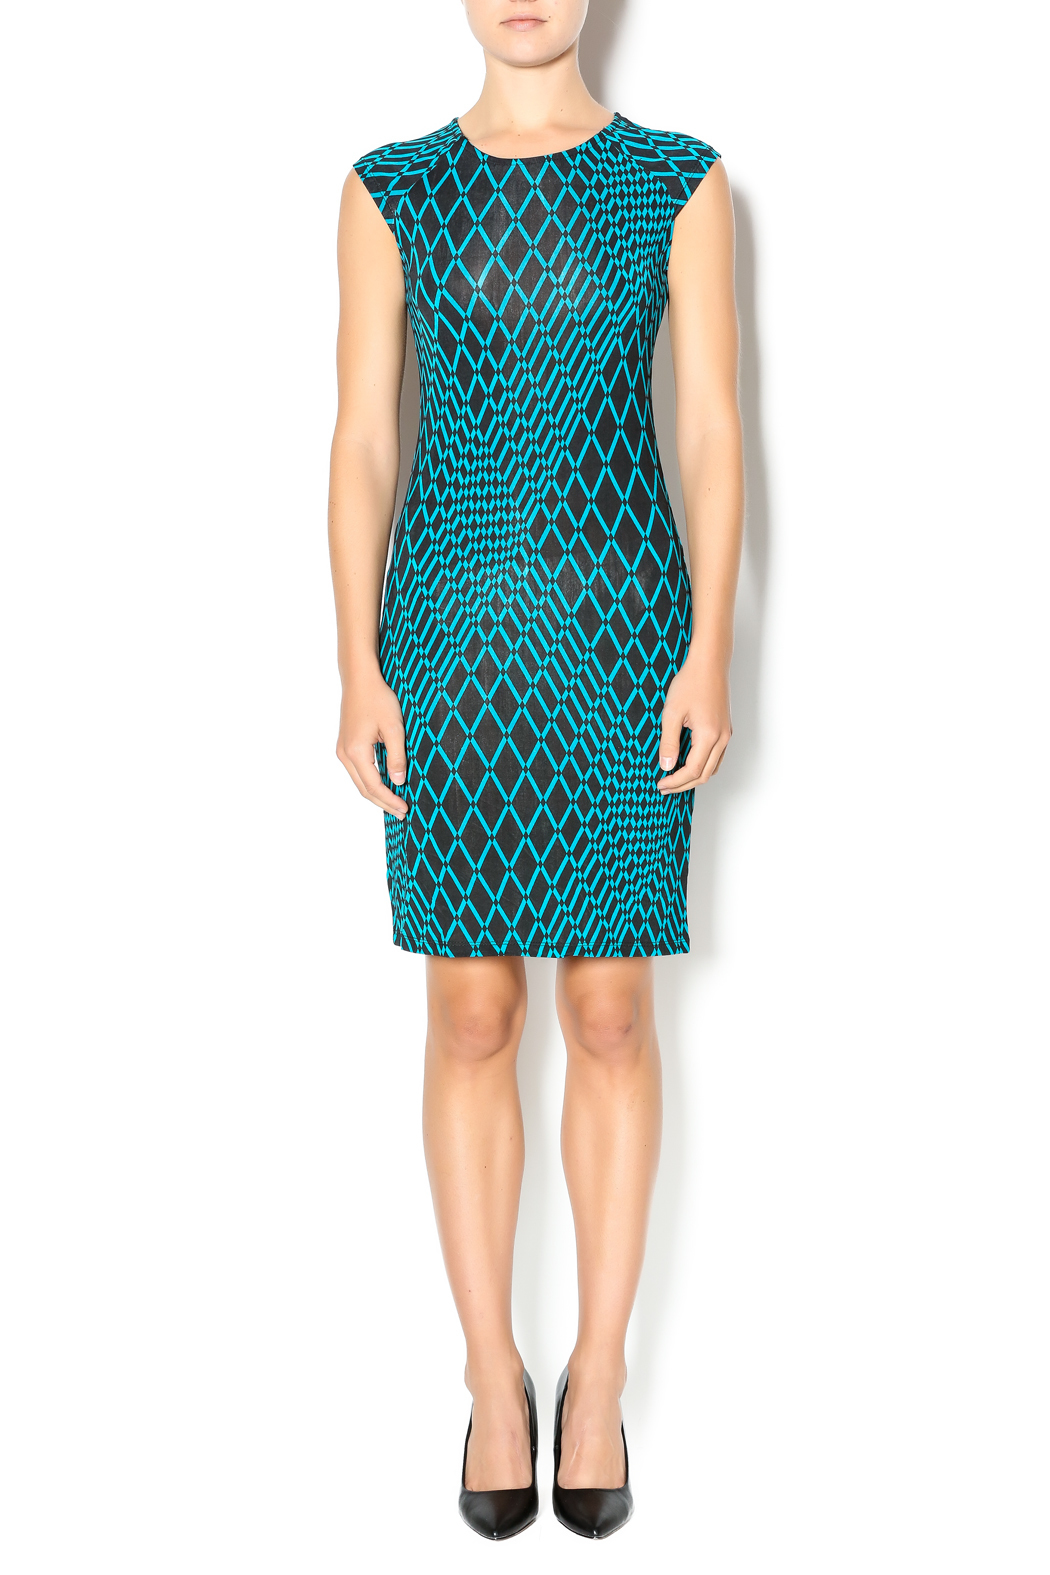 MT Collection Geometric Diamond Print Dress - Front Full Image